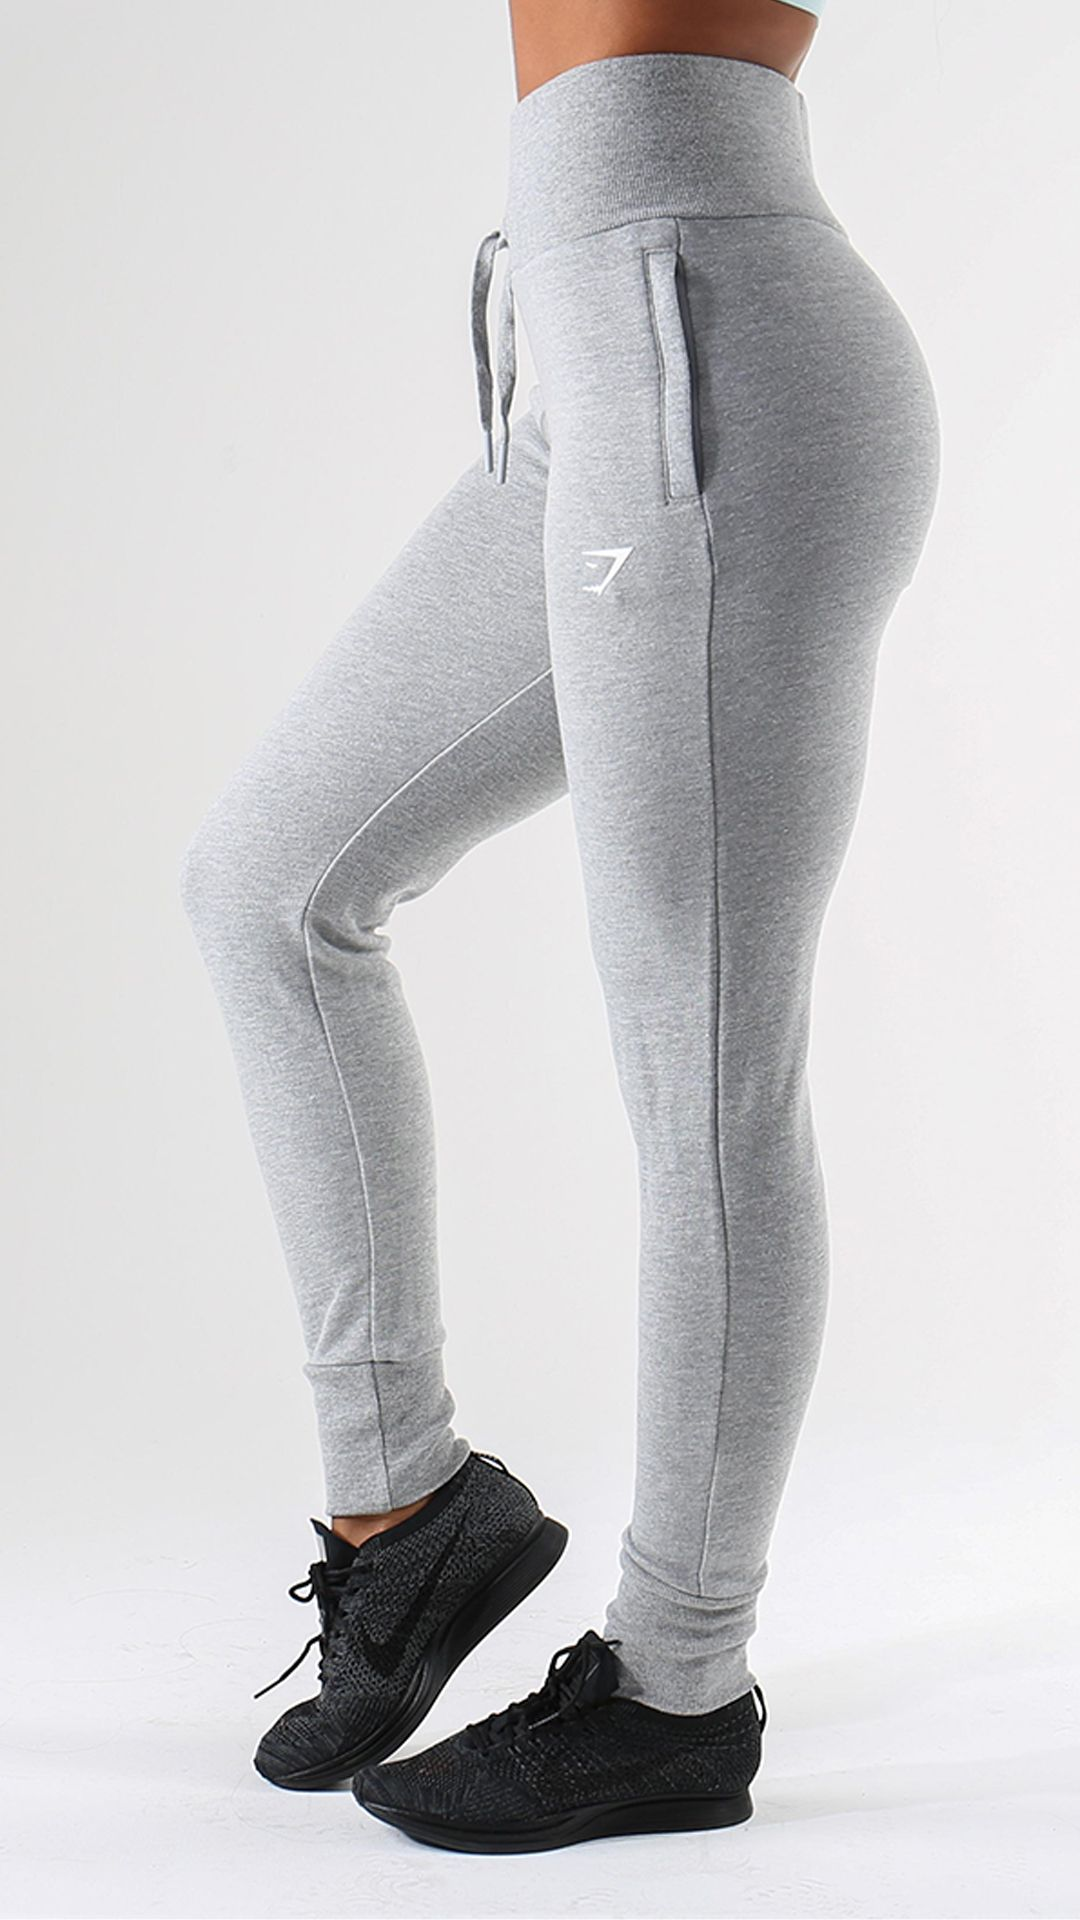 Get Luxurious Comfort From The High Waisted Joggers Tailored For A High Waisted And Figure Hugging Fit Sport Outfits Sport Outfits Gym Sporty Outfits